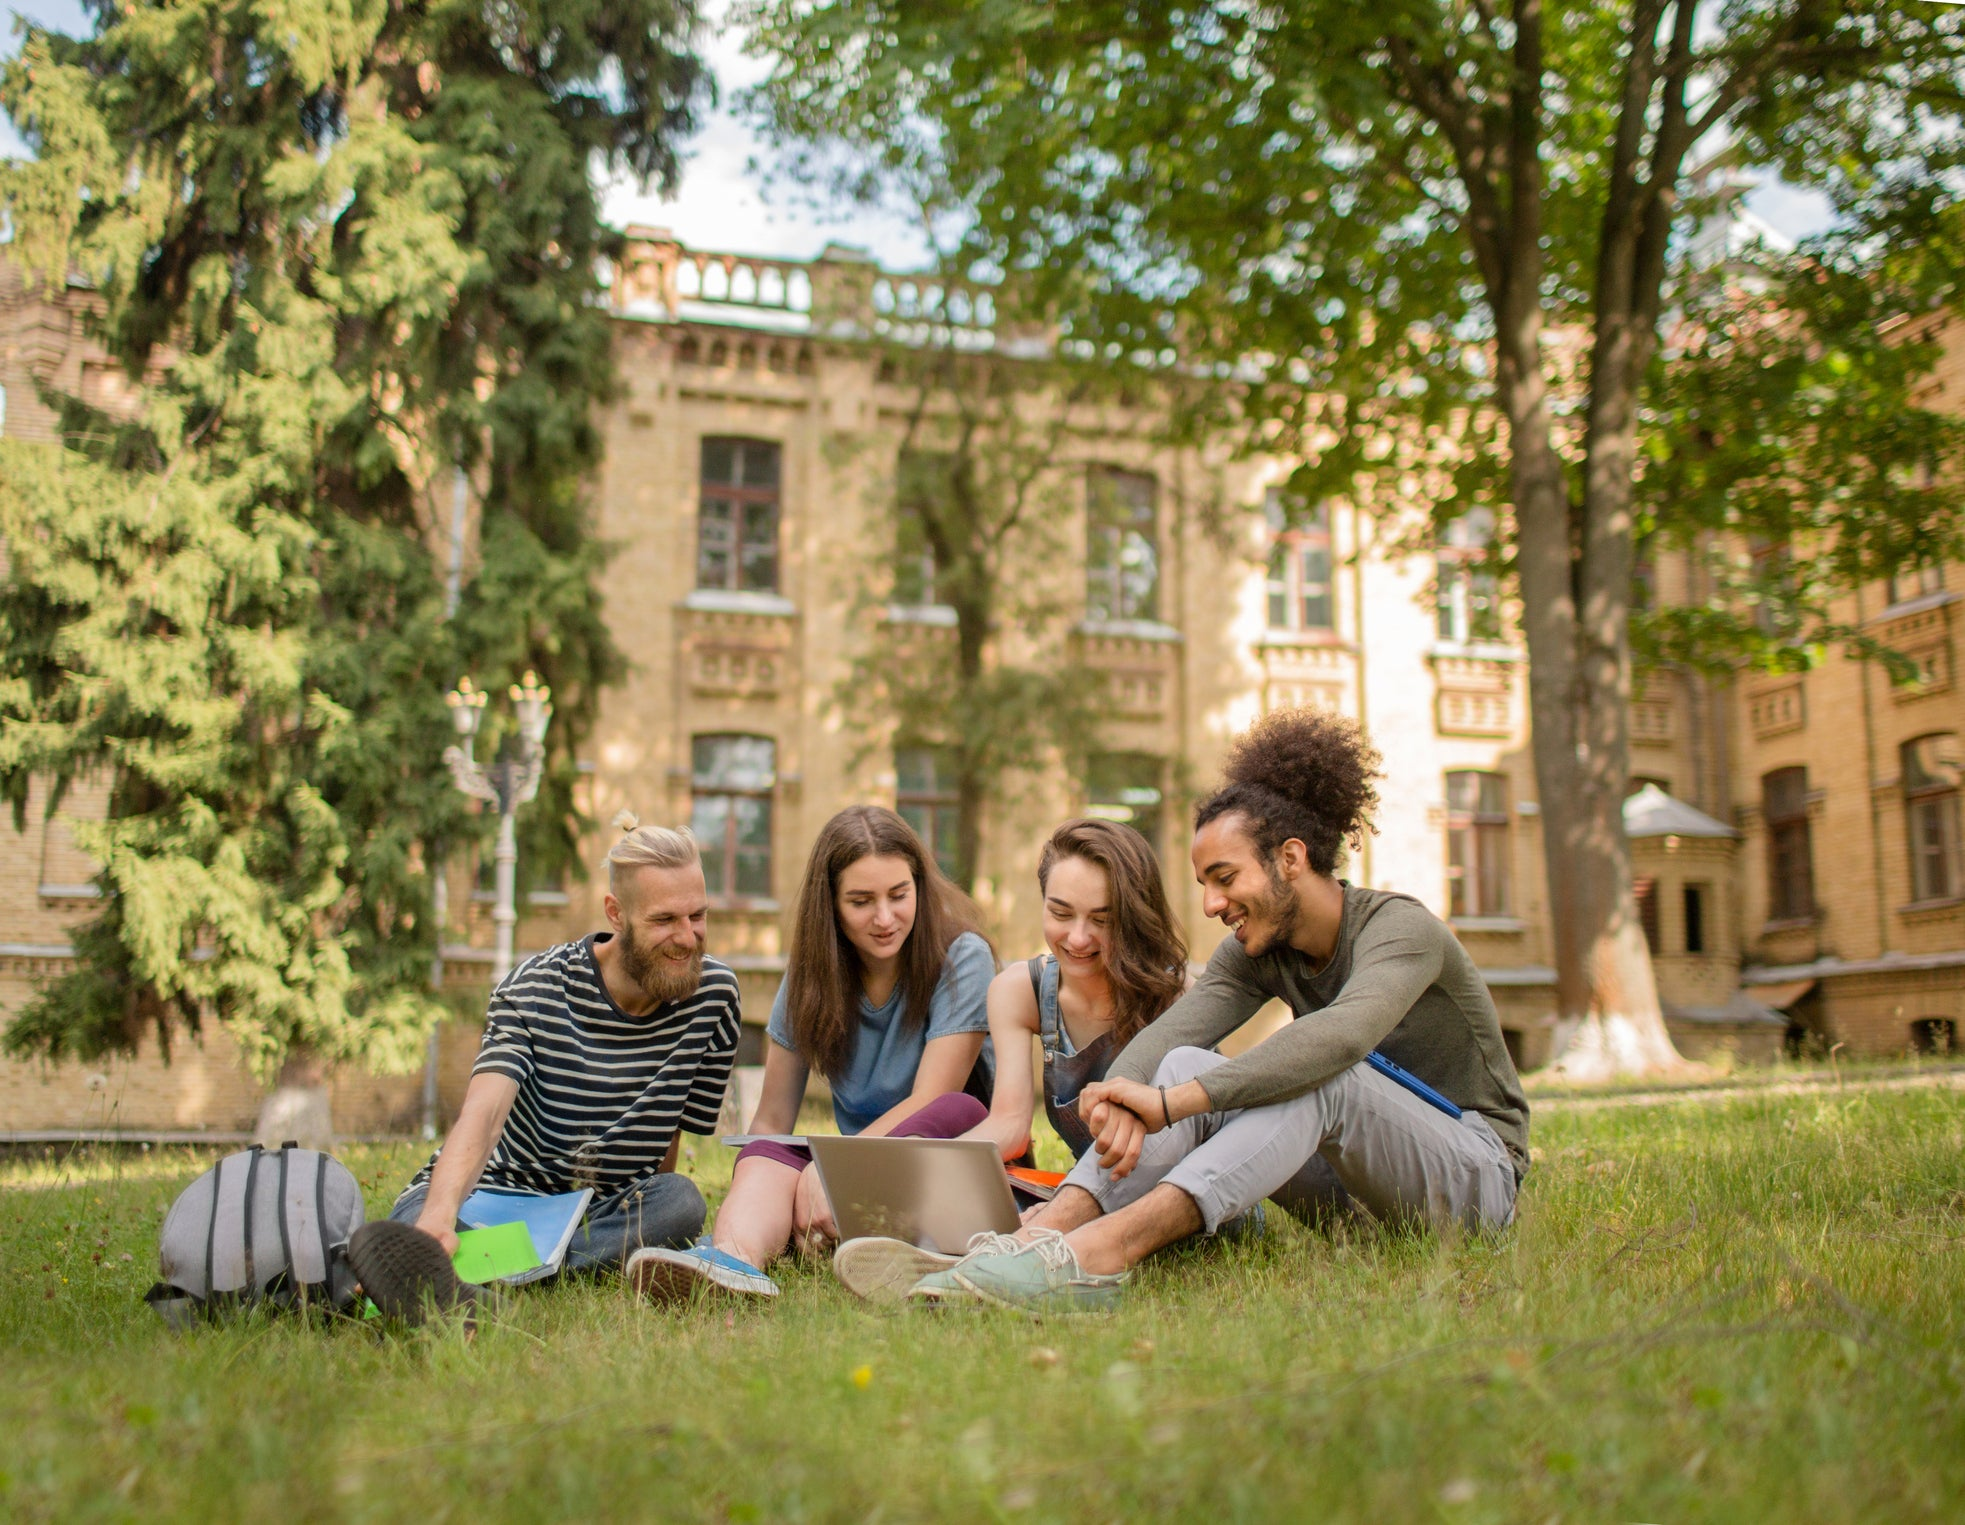 College students studying on the grass in front of a large school building.